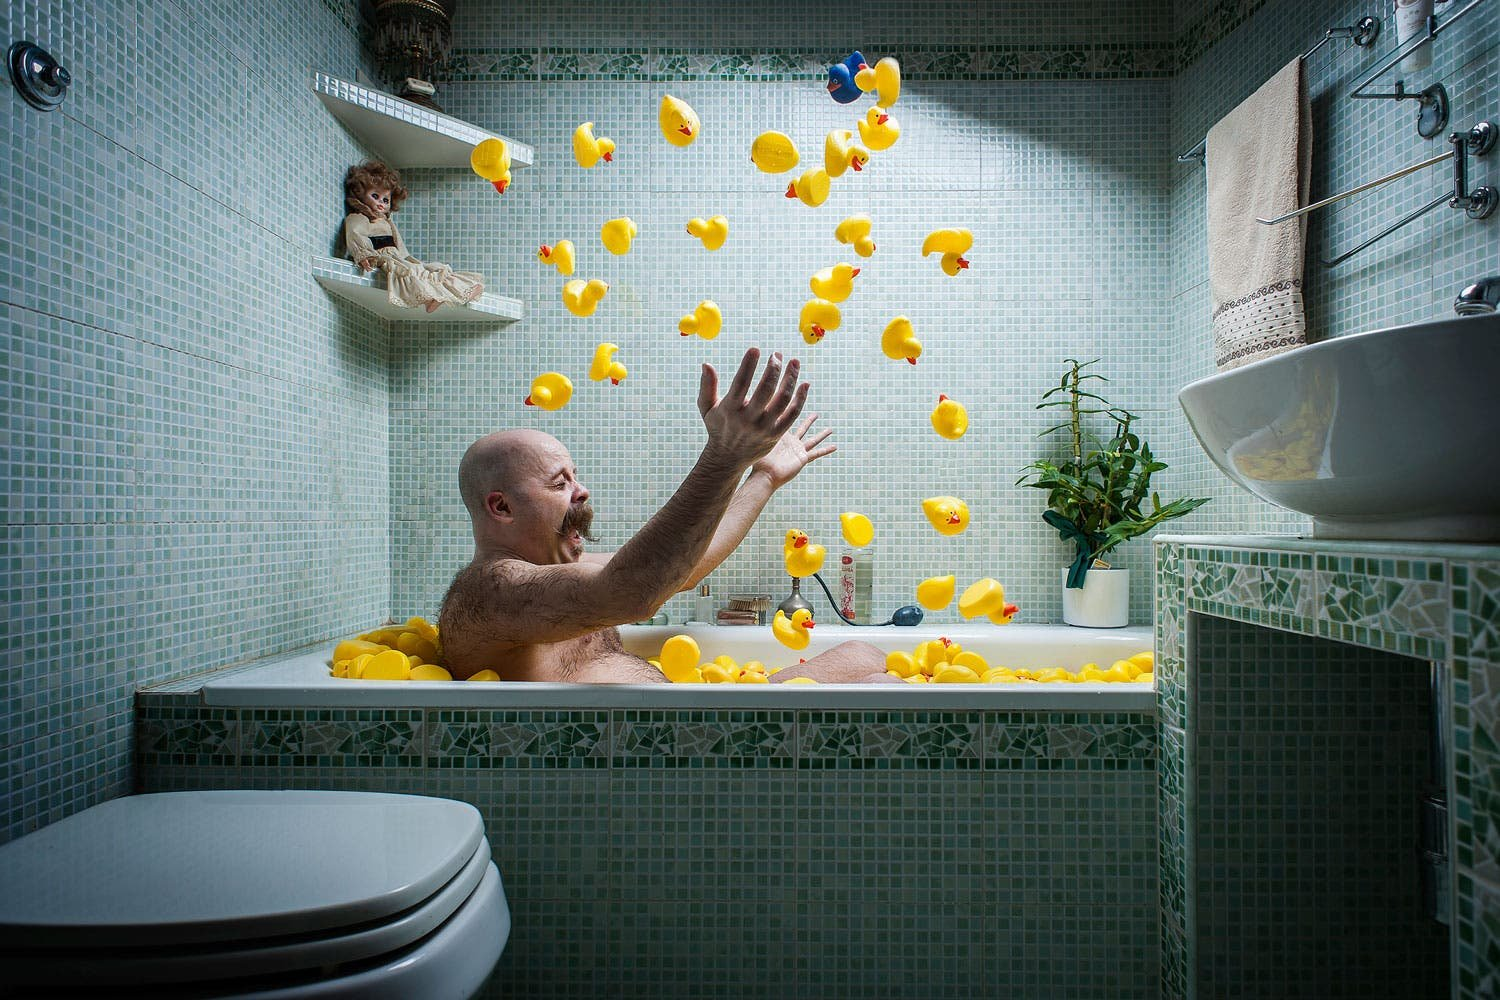 Challenge Yourself: 15 Photo Projects You Can Do at Home